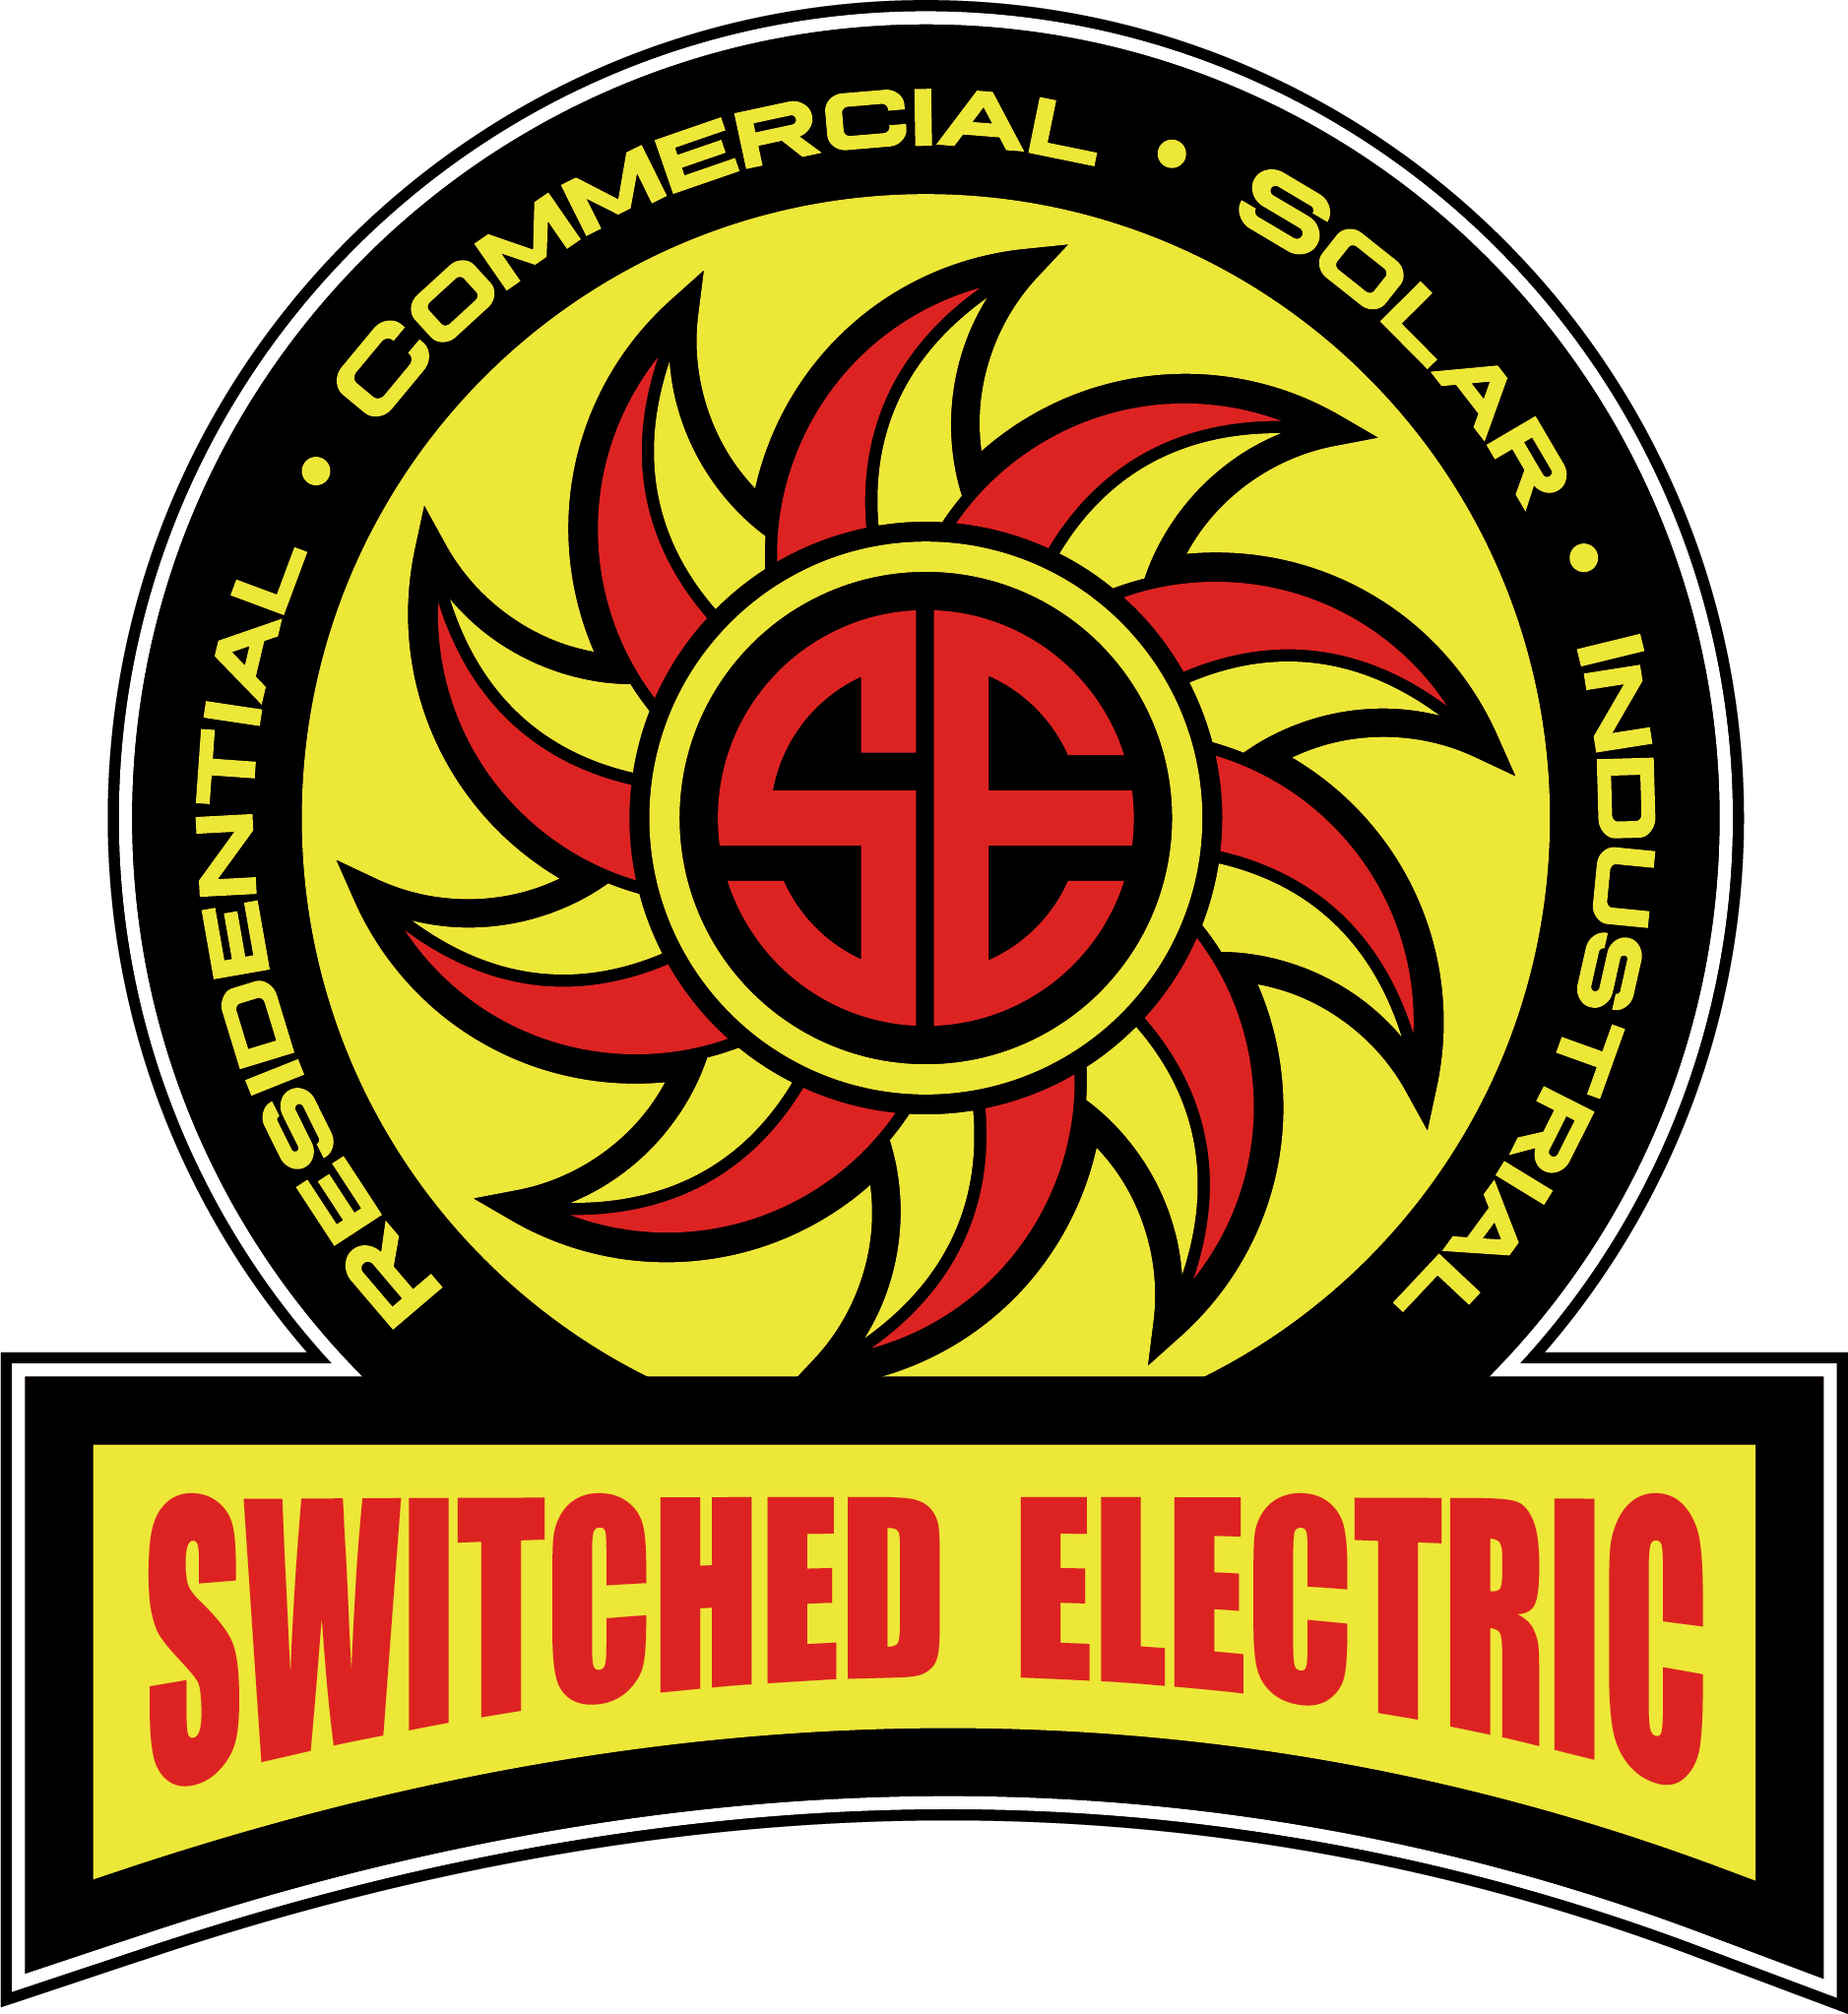 San Francisco's Electrical Specialists